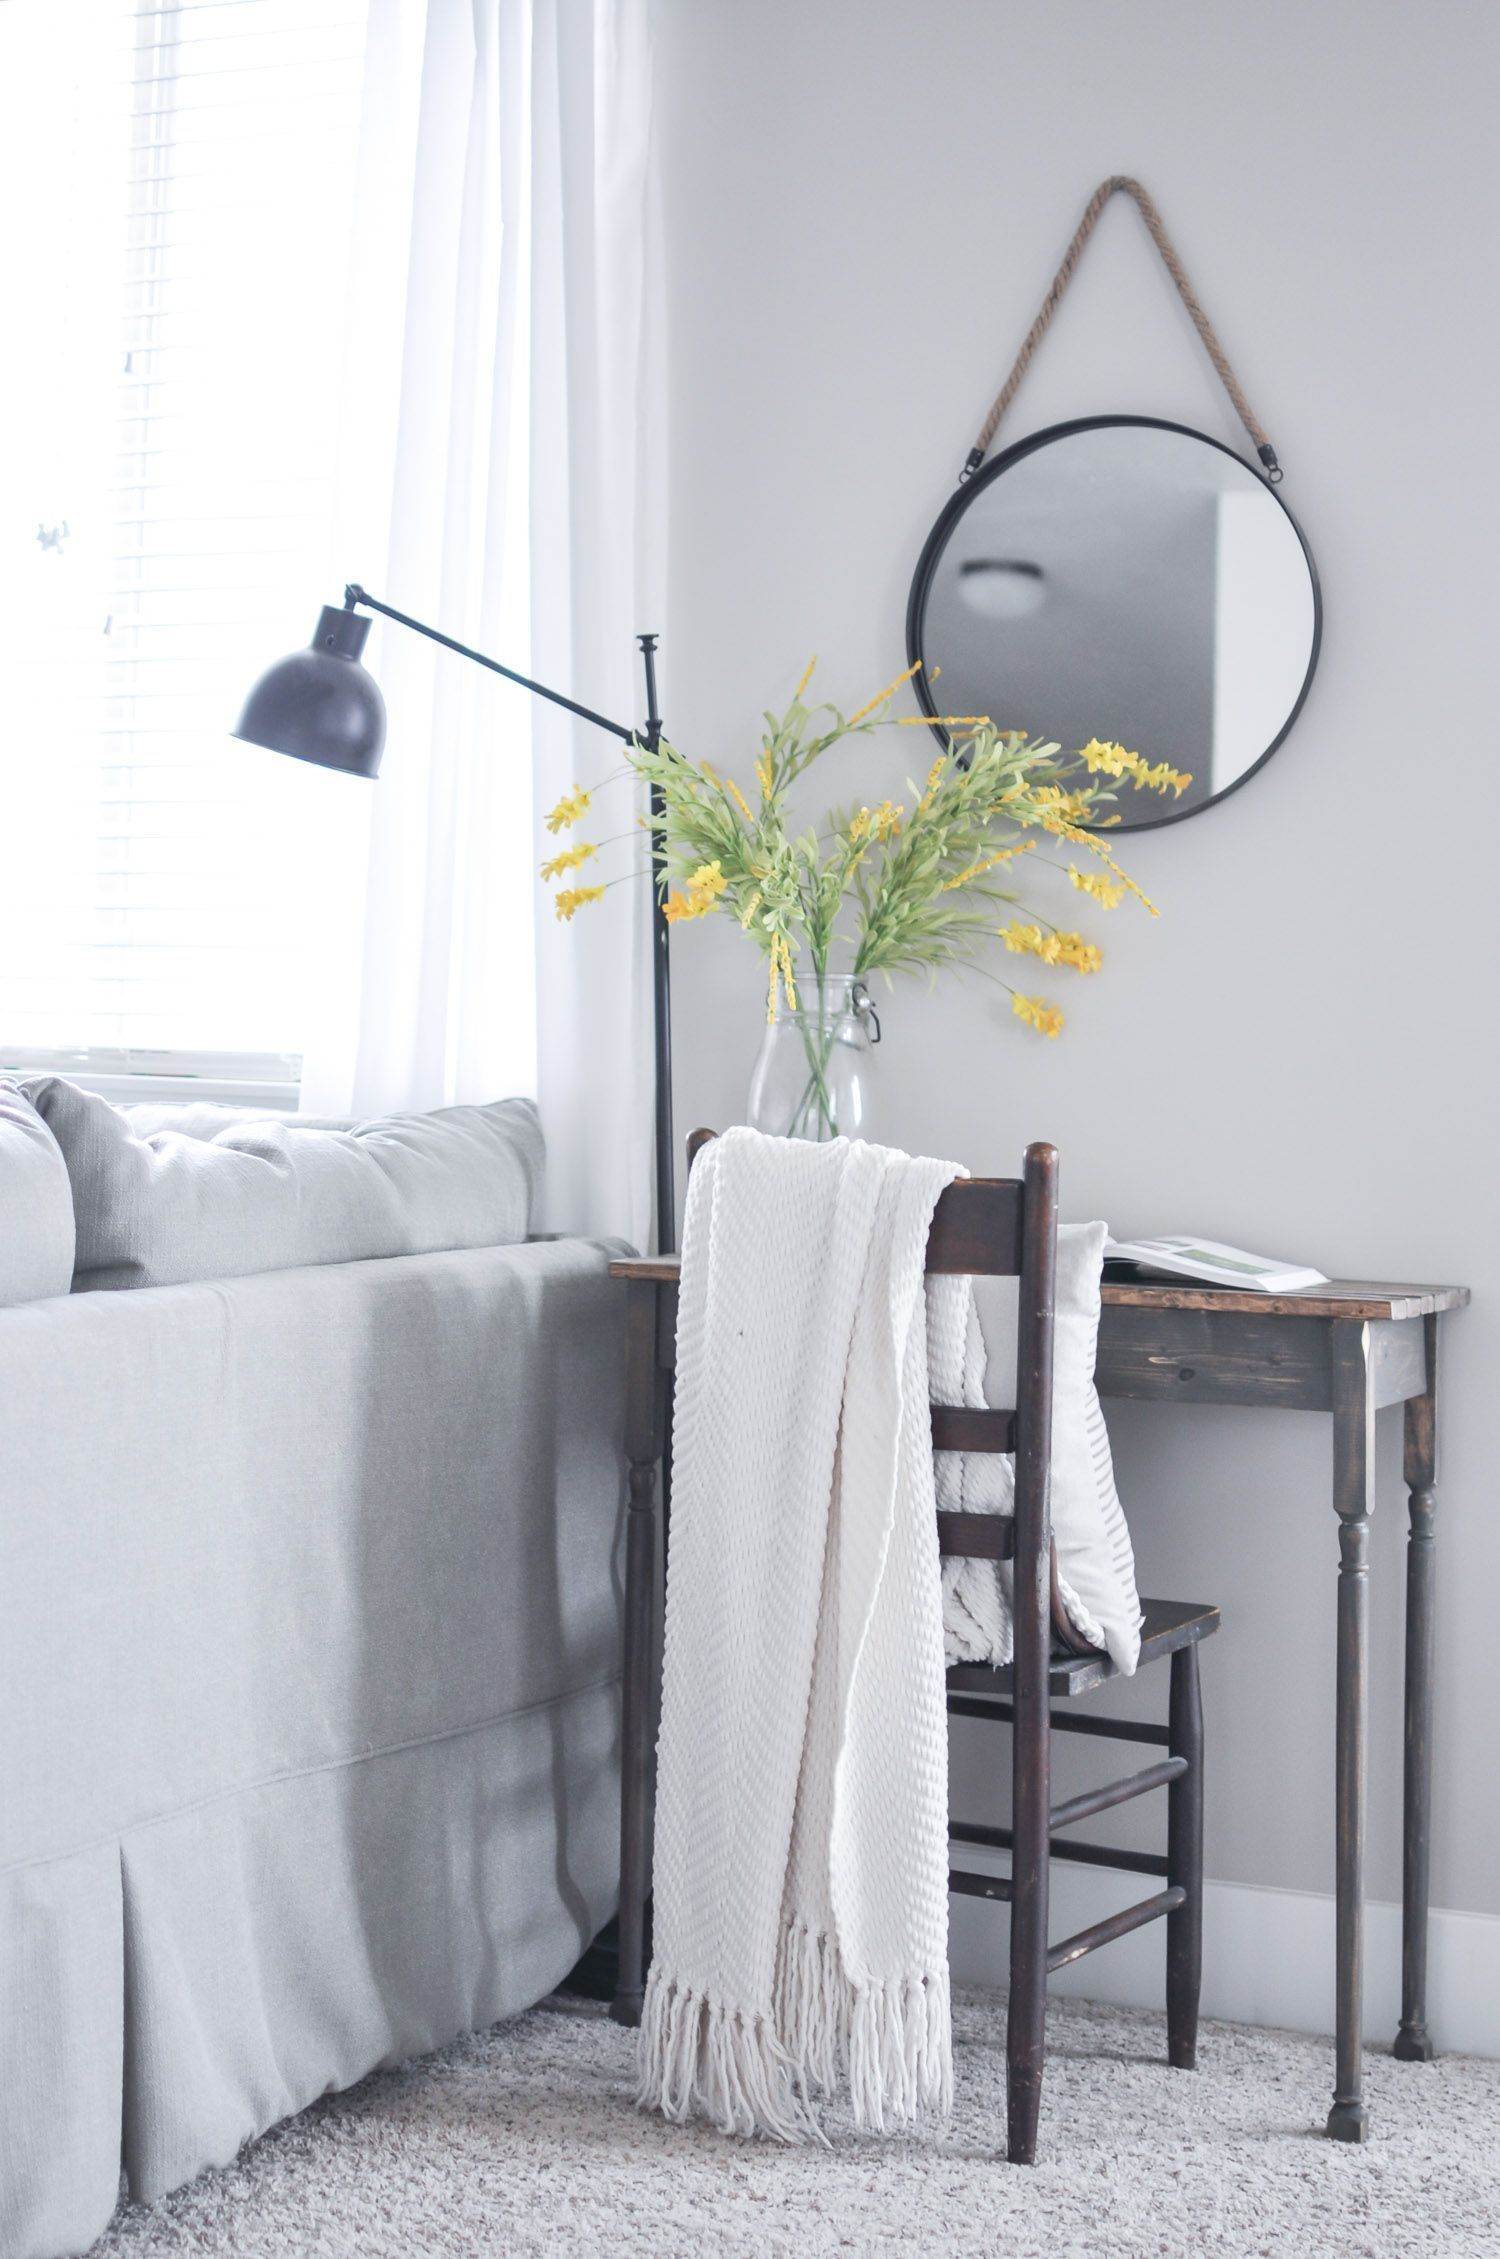 Badezimmer dekor billig our home consists of neutral simple and easy to manage decor this